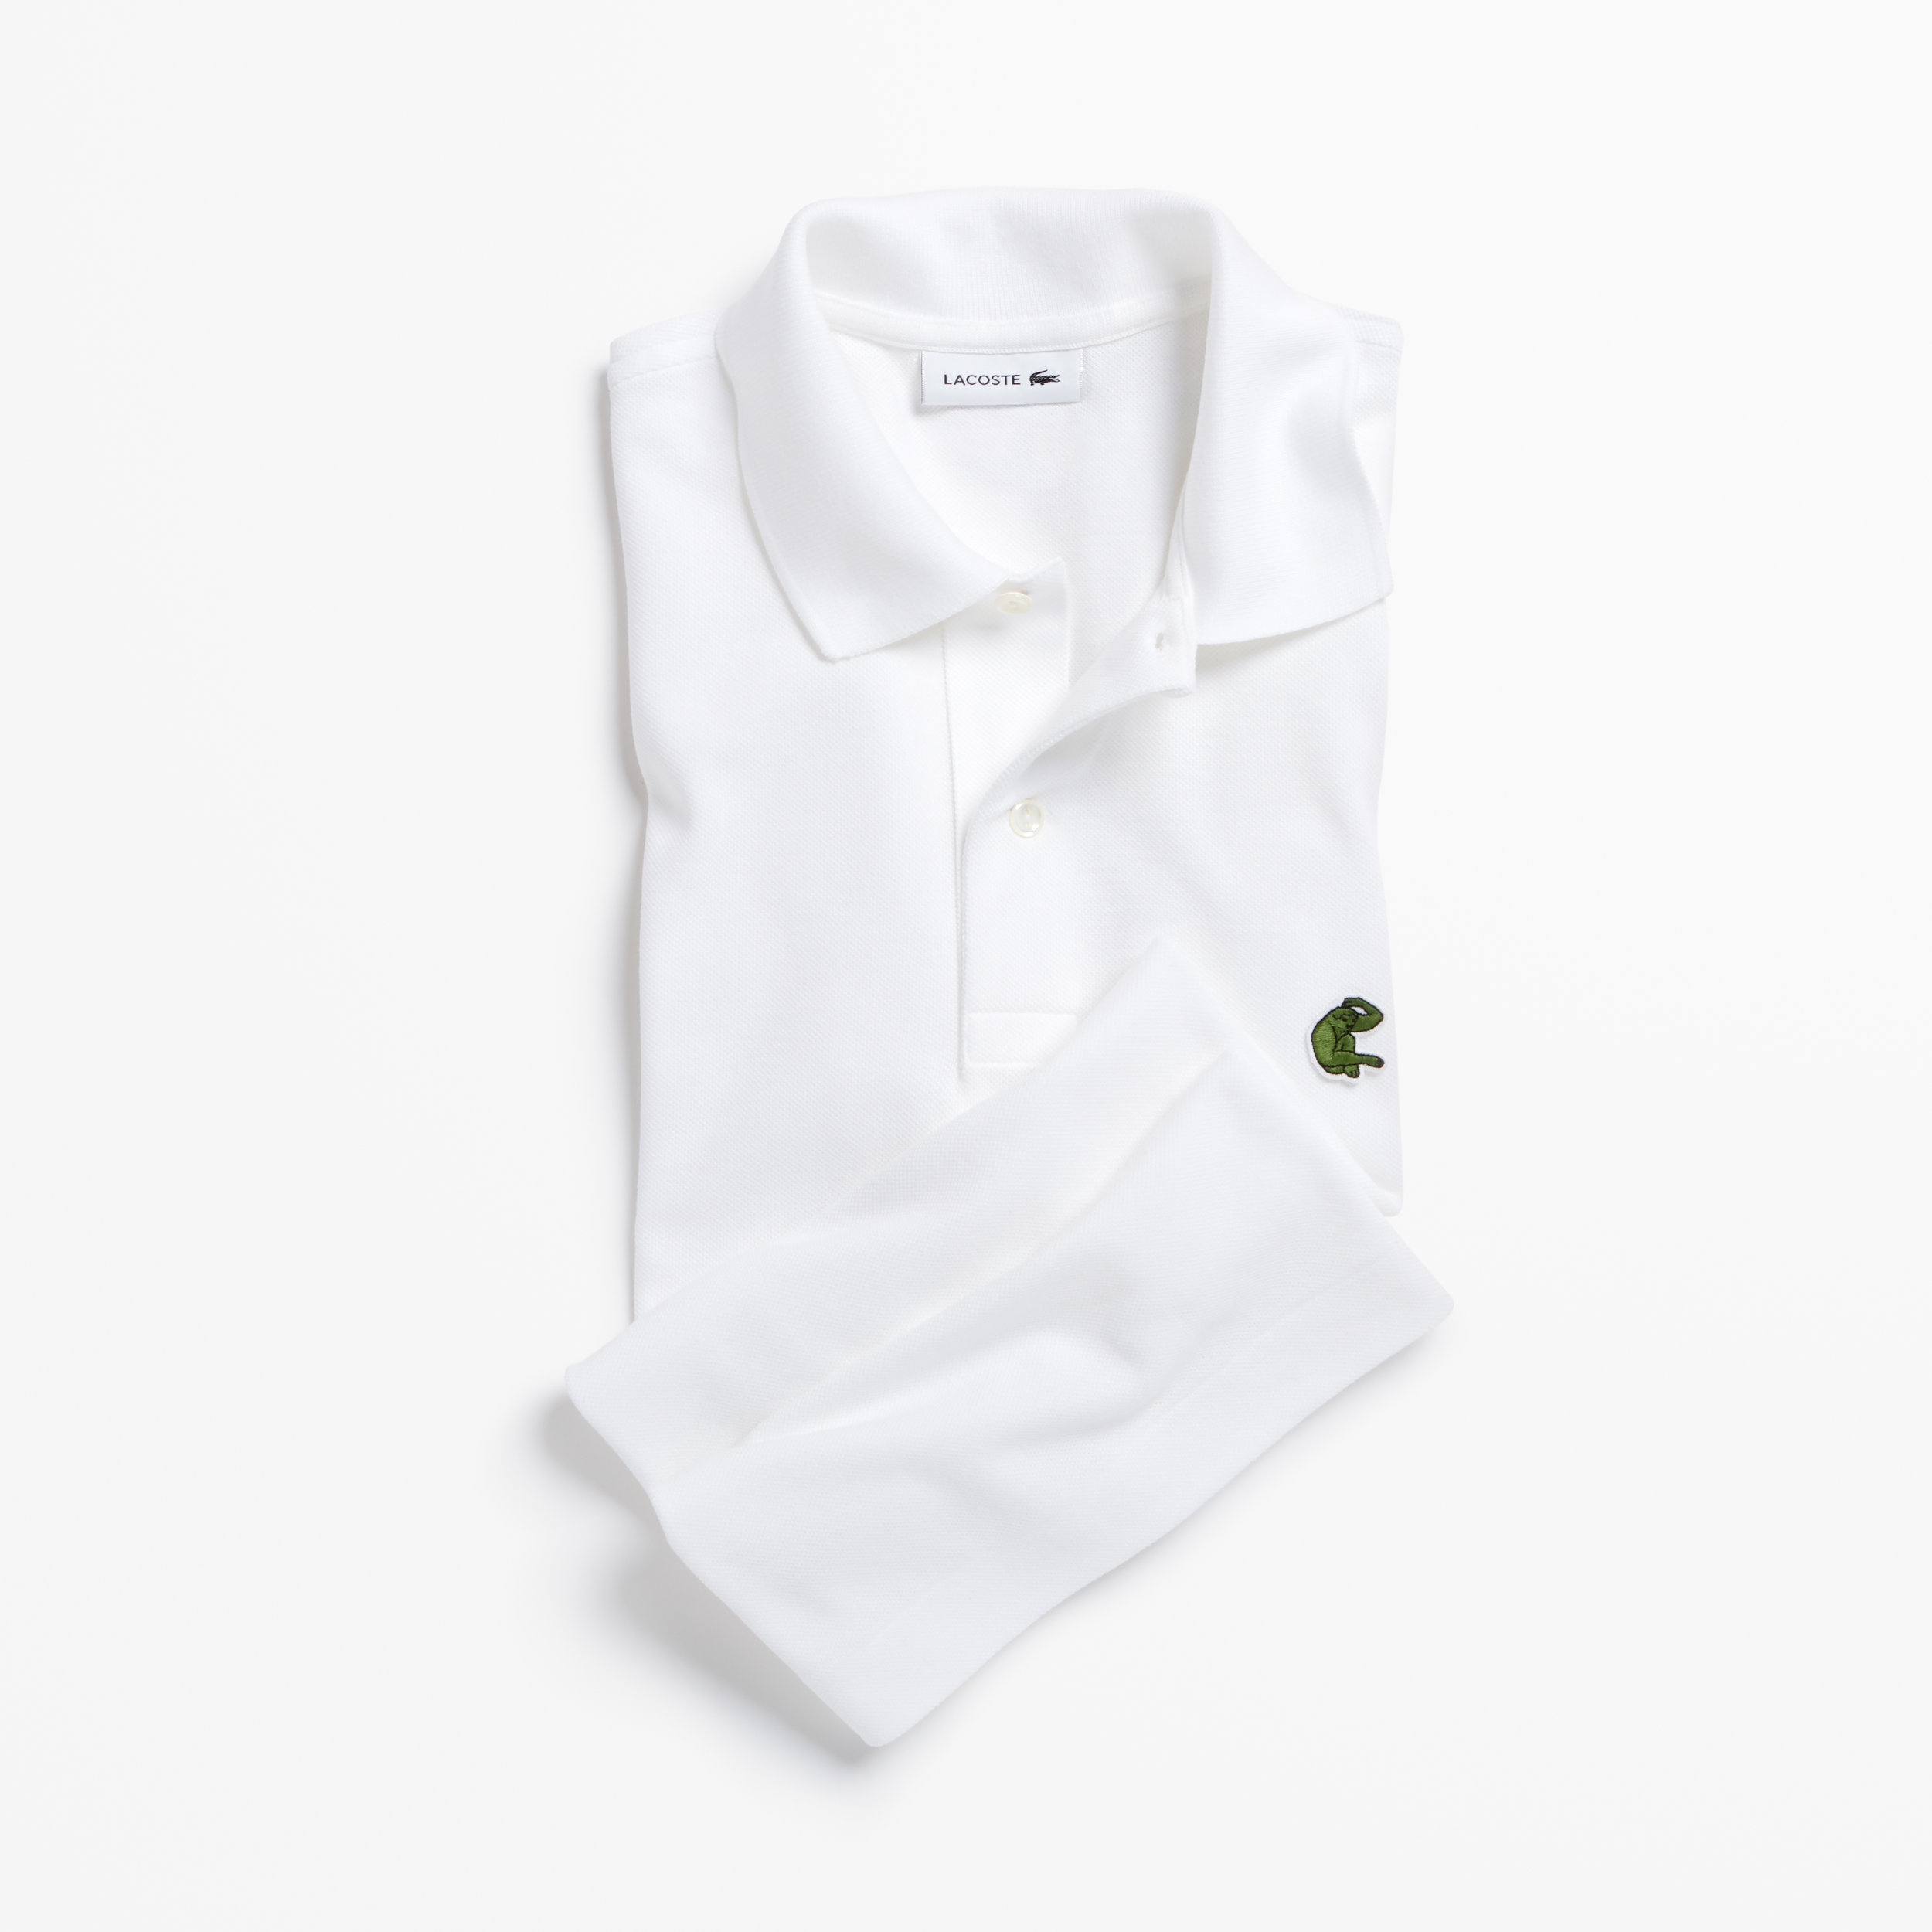 06. LACOSTE X SAVE OUR SPECIES (UICN)_THE KAKAPO PARROT_PH4661.jpg